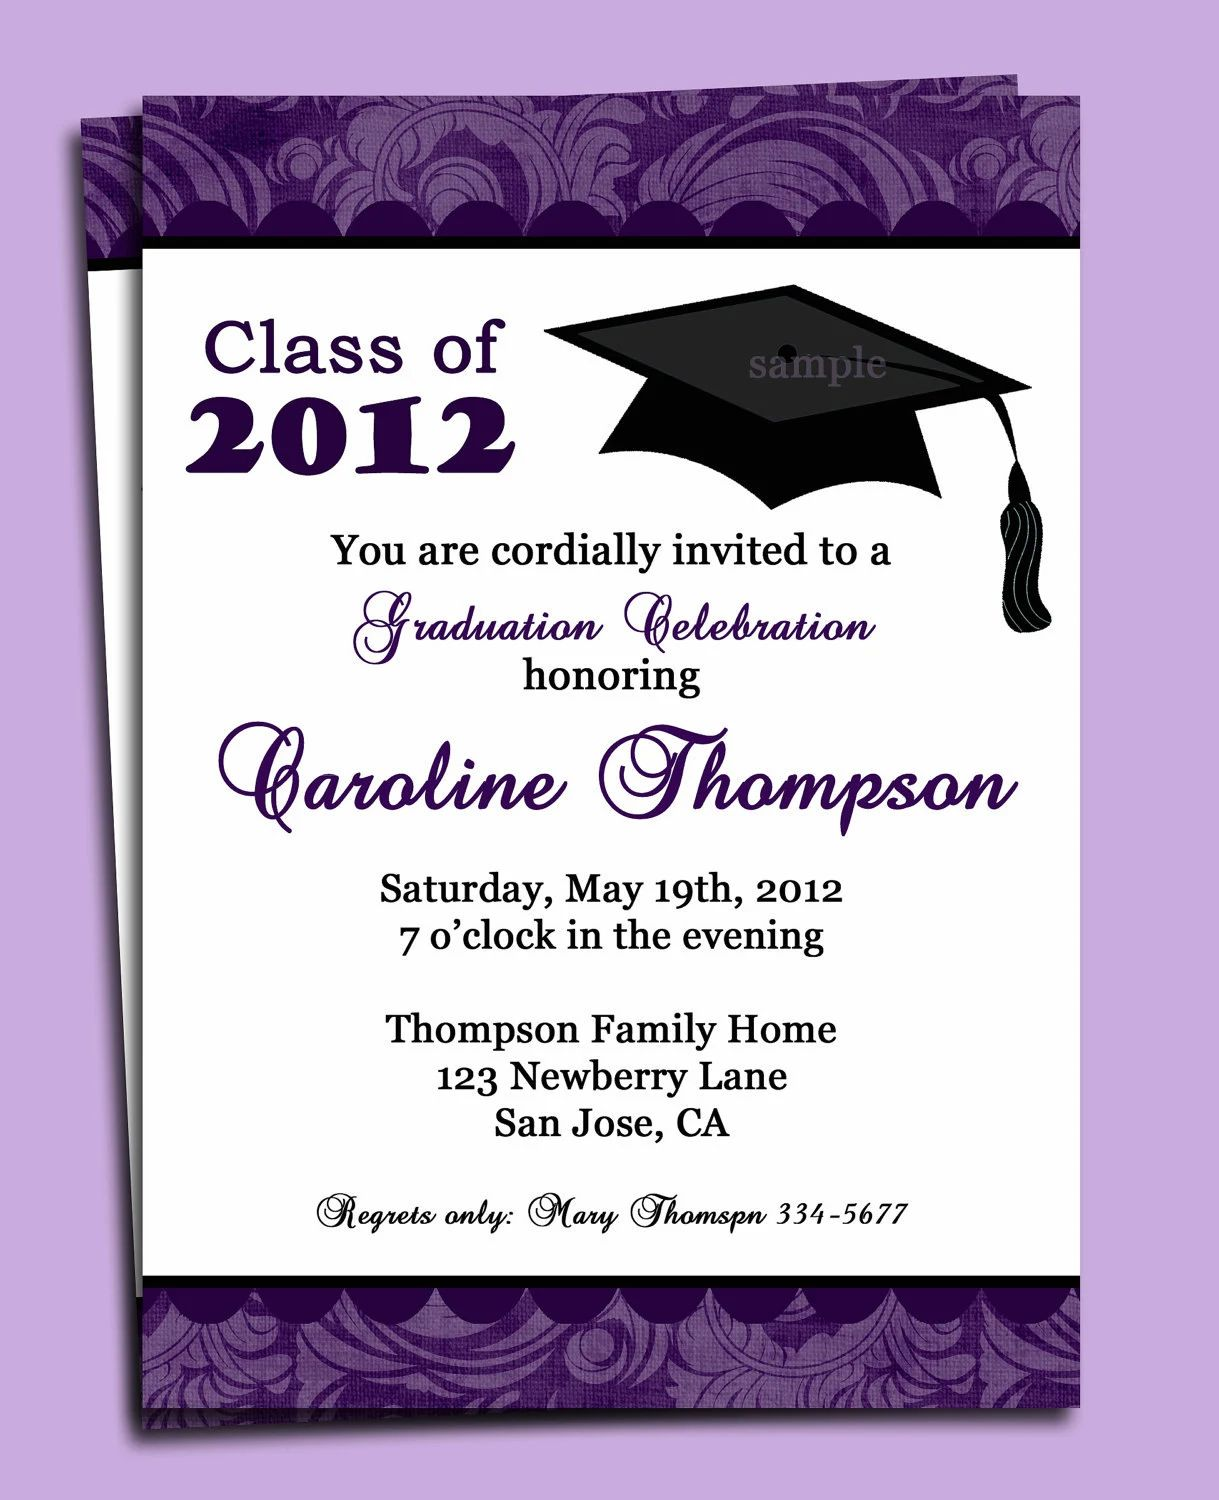 graduation invitation samples